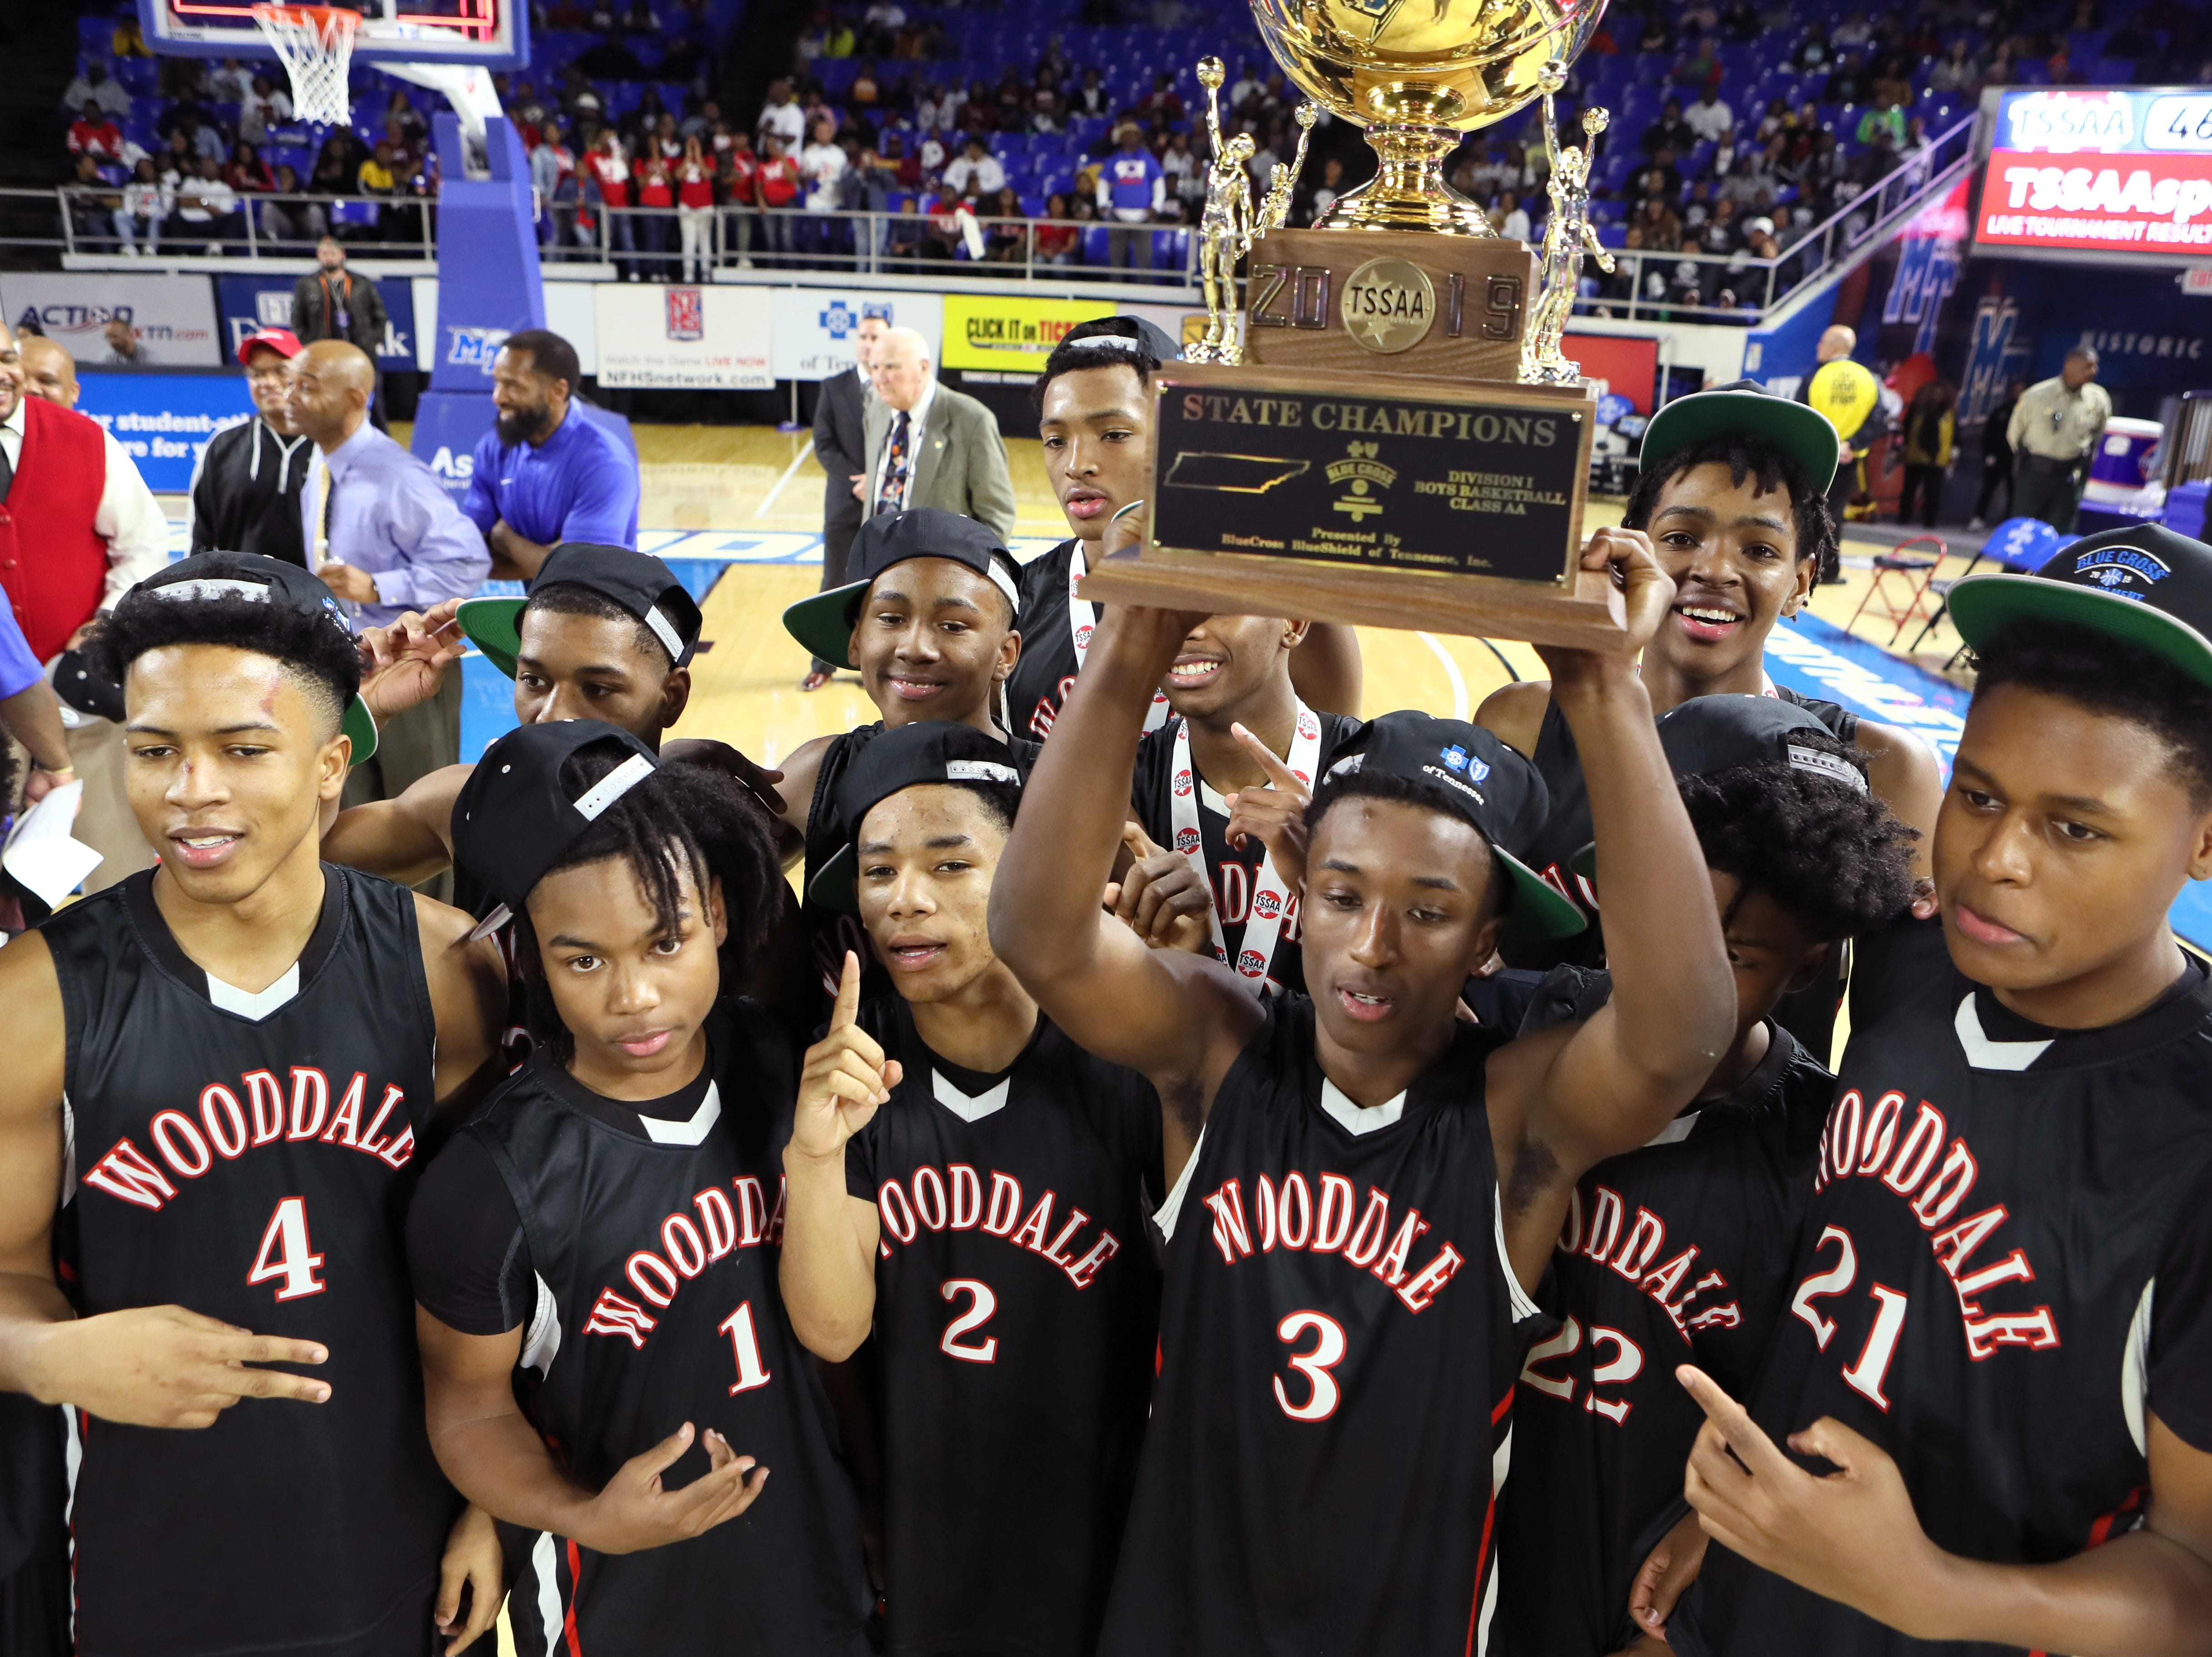 Wooddale celebrates their Class AA boys basketball state championship win Fulton at the Murphy Center in Murfreesboro, Tenn. on Saturday, March 16, 2019.